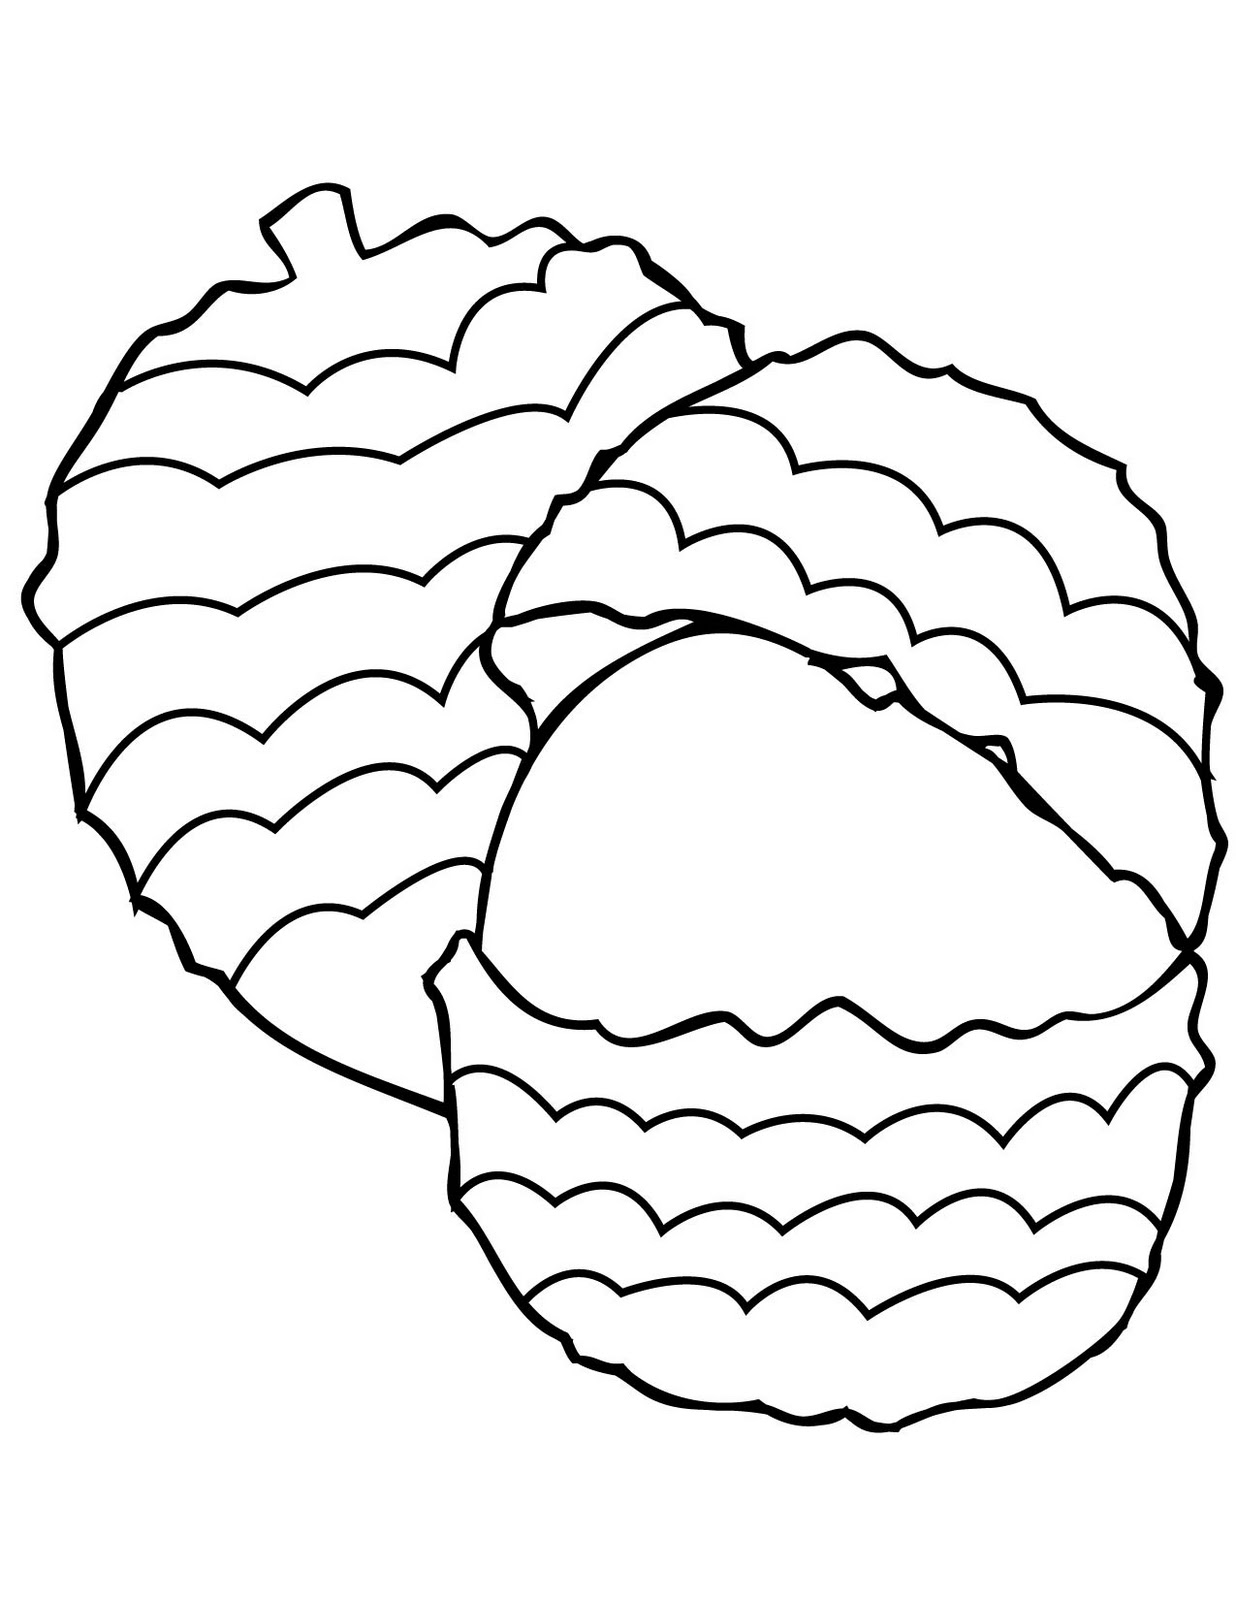 Rare Fruits Coloring Pages